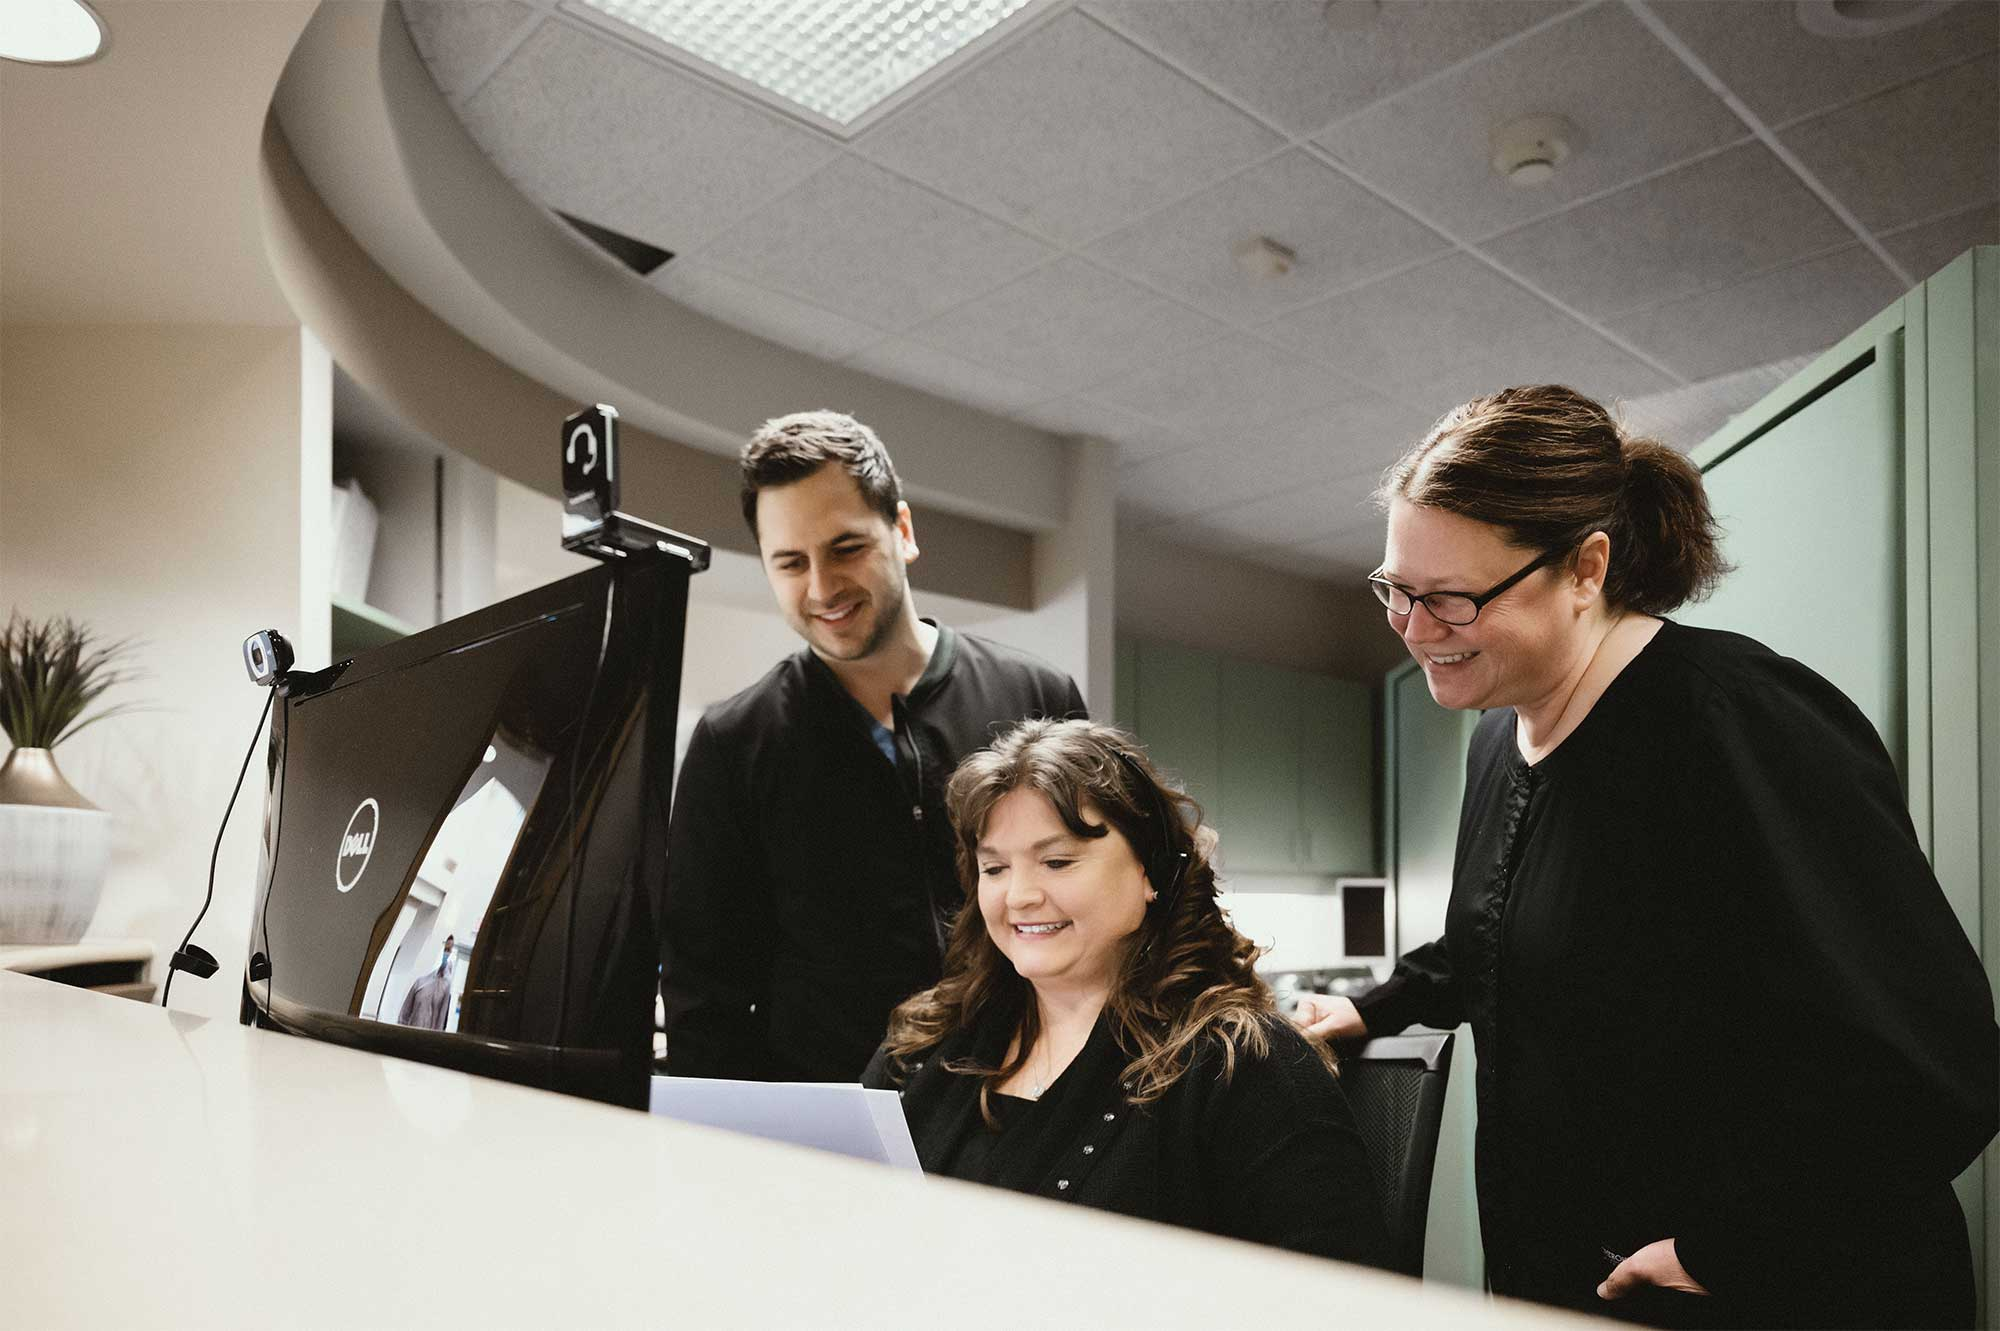 Photo of Dr. Majidian and two team members working together on a computer